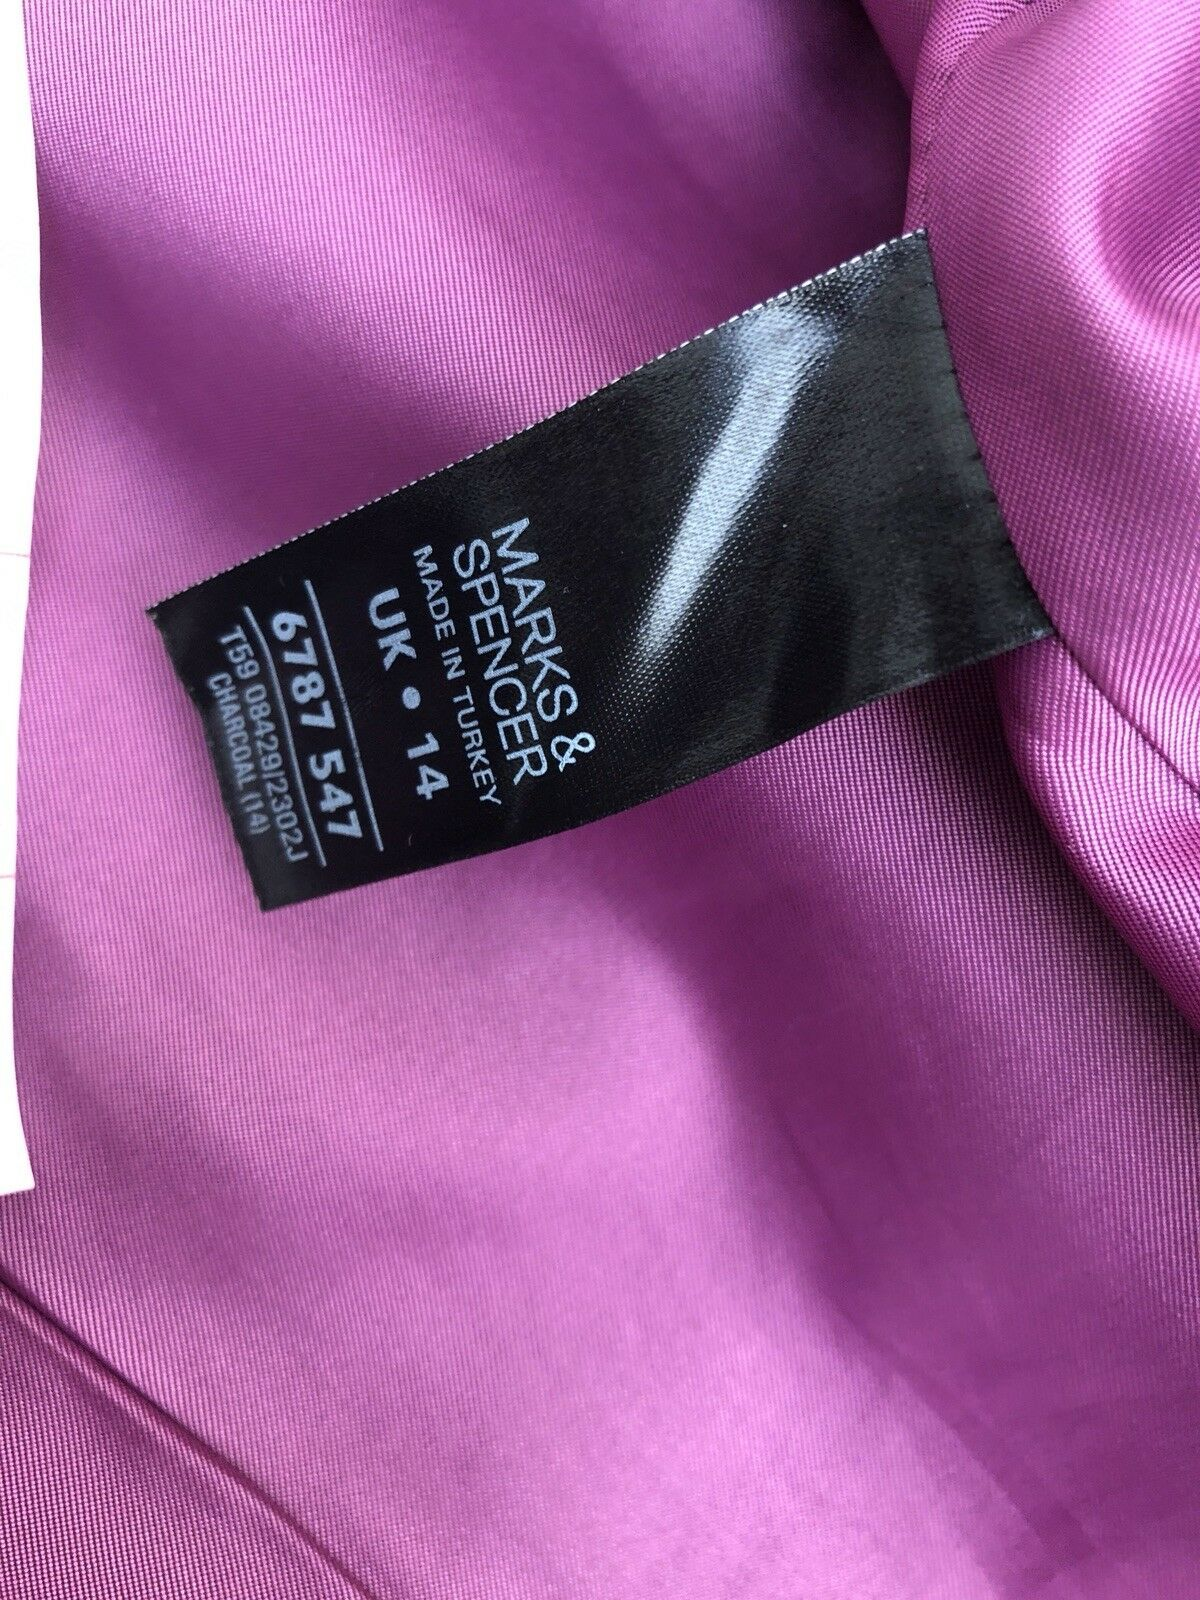 M&S Skirt Suit Size 14 & 12 Grey Grey Grey Formal Business Outfit Workwear 2 Piece c95696